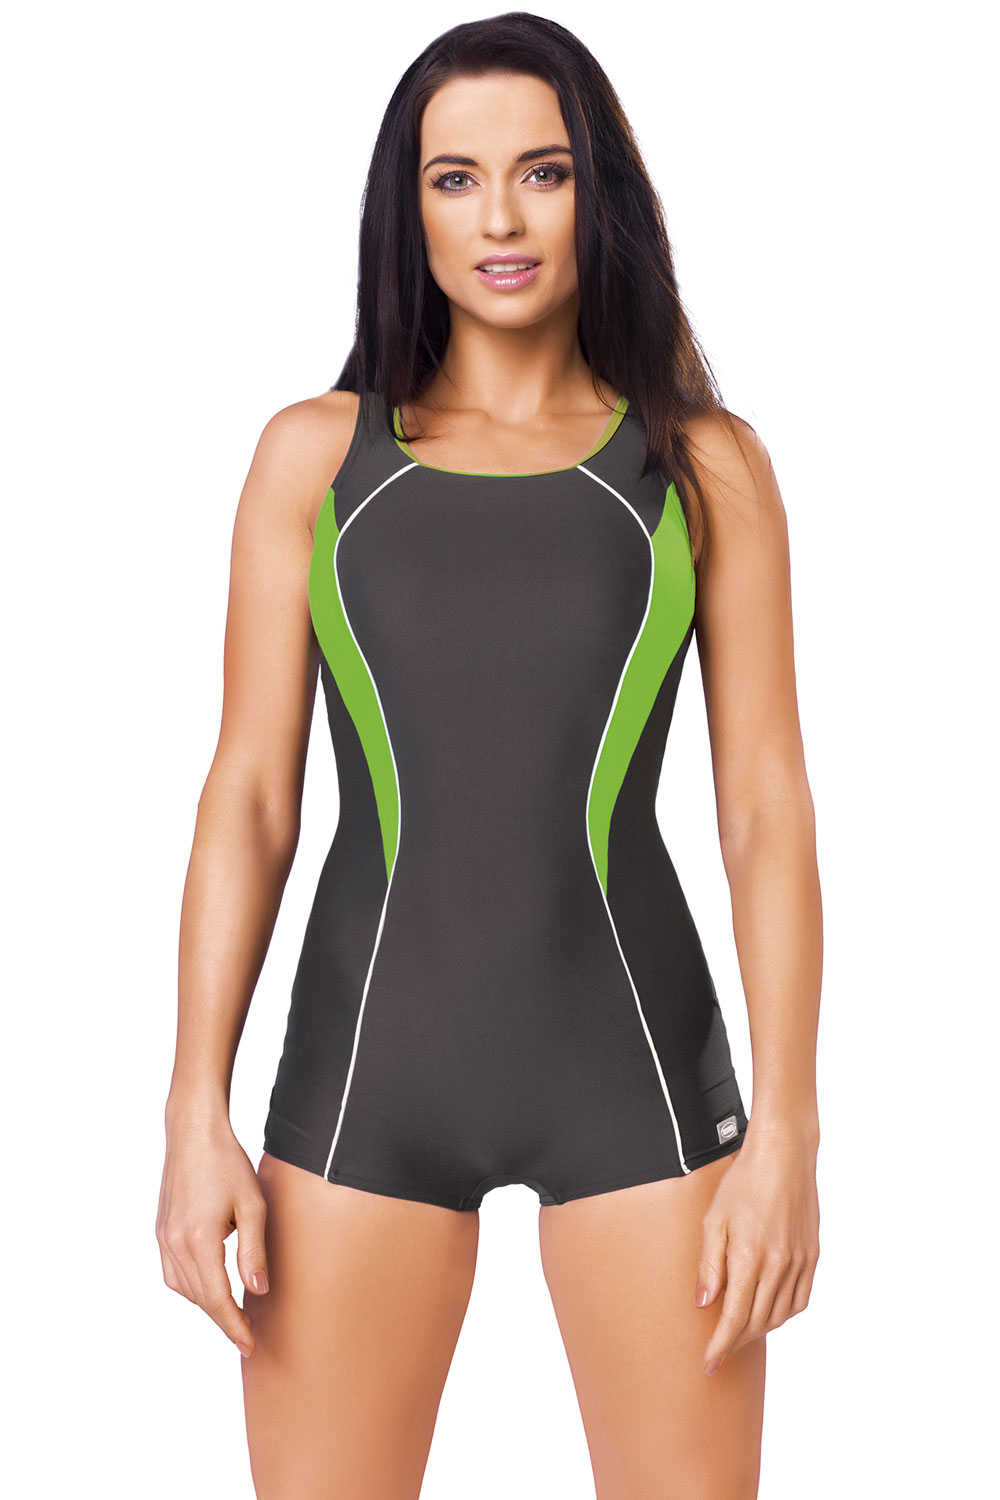 gwinner isabel i womens one piece swimsuit shorts